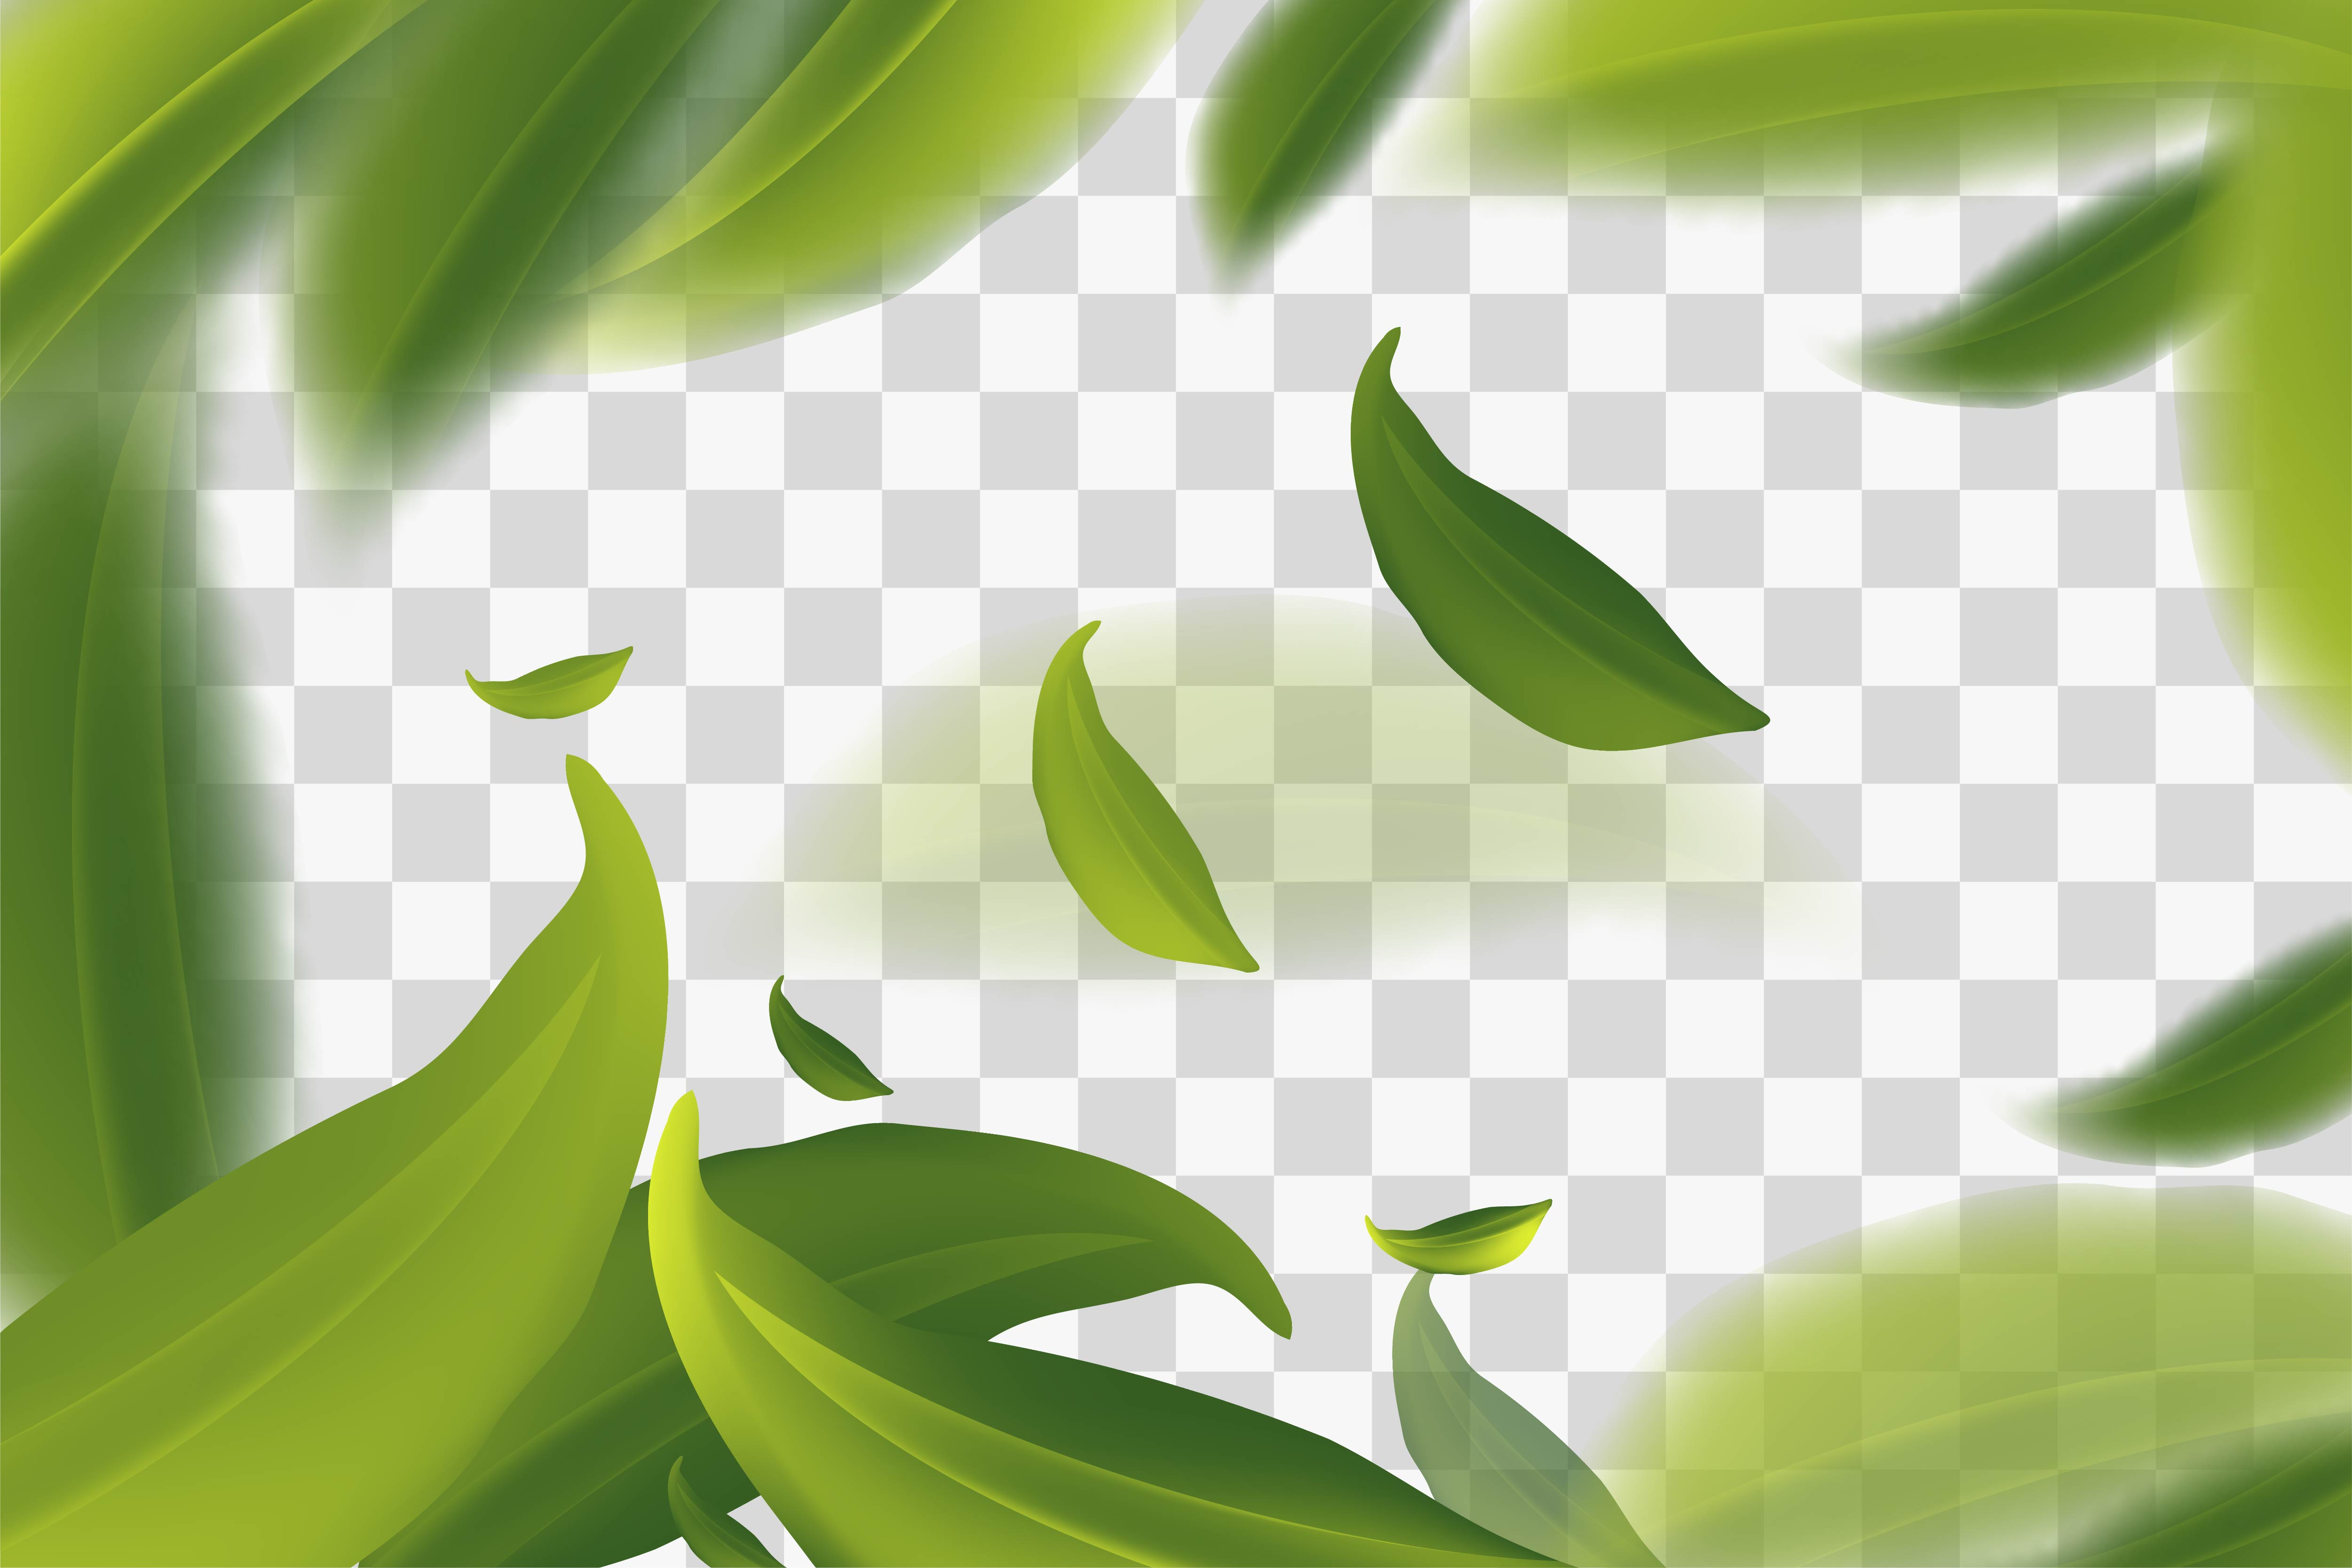 Vector 3d Illustration With Green Tea Leaves In Motion Background Graphic By Ojosujono96 Creative Fabrica